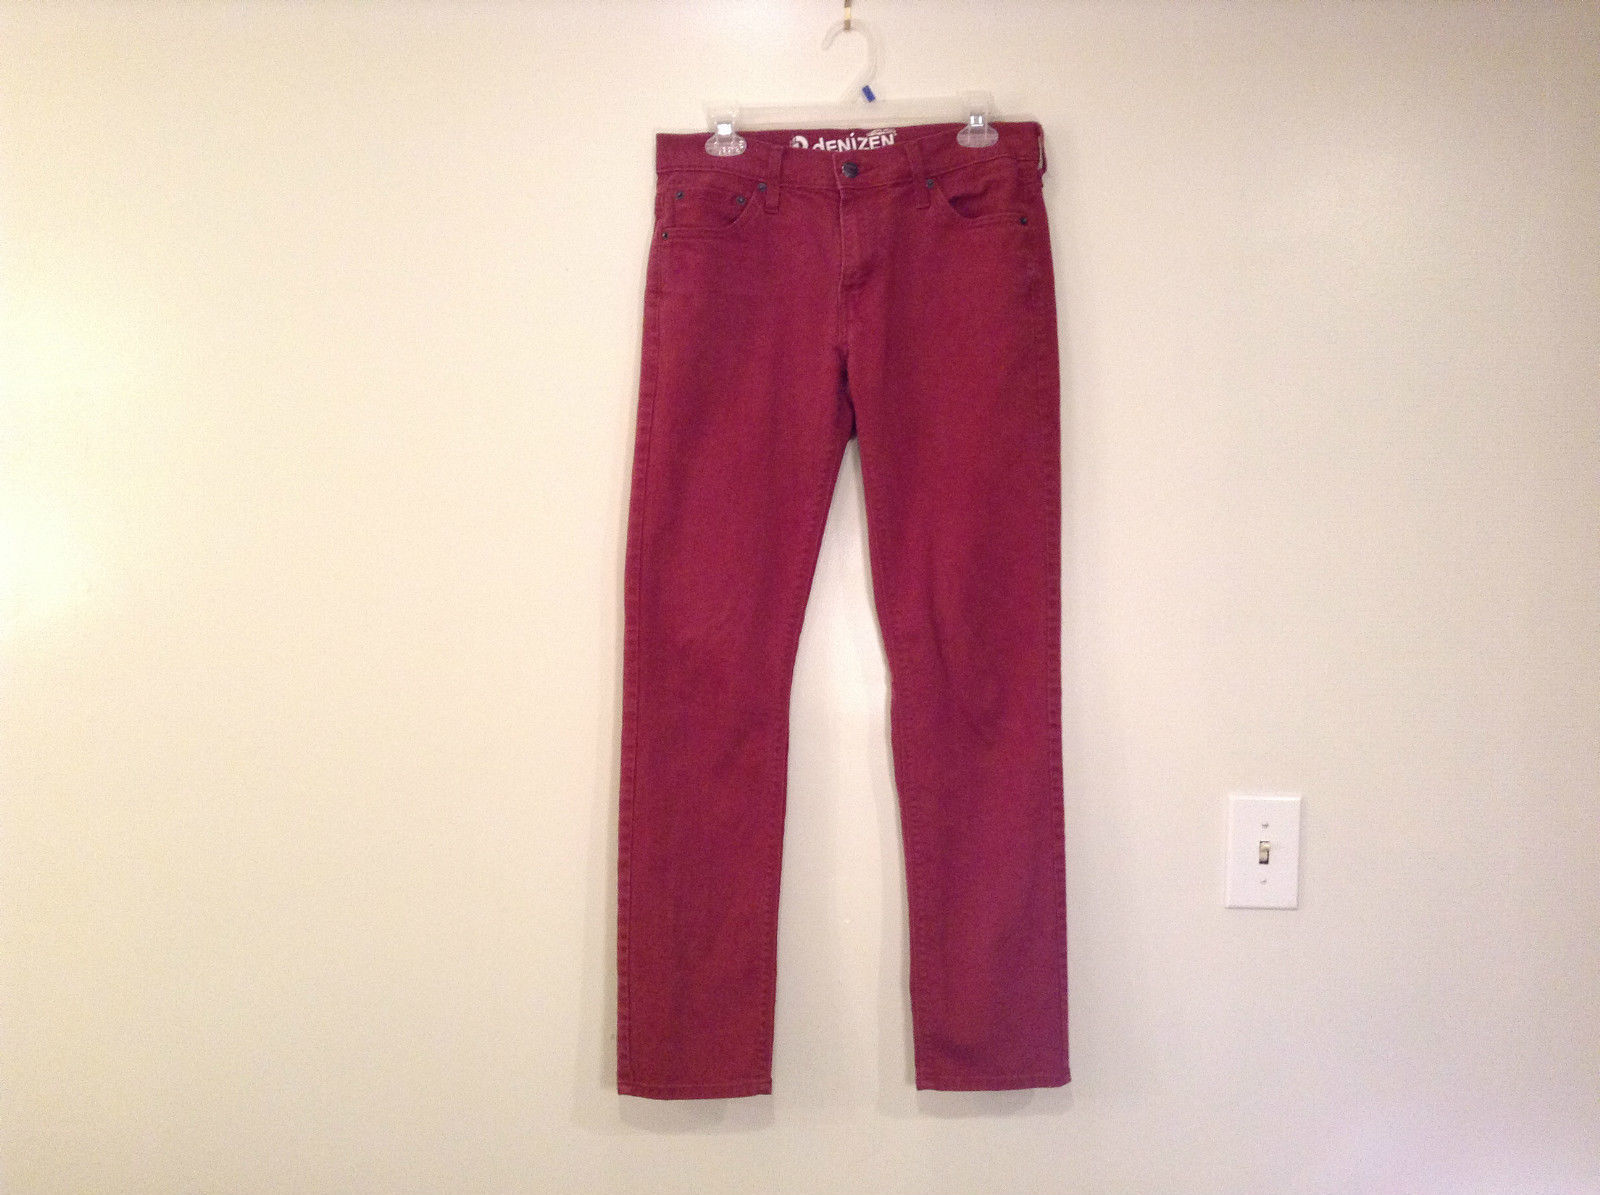 Denizen from Levis 216 Skinny Red Straight Leg Jeans Size W29 L32 Pockets